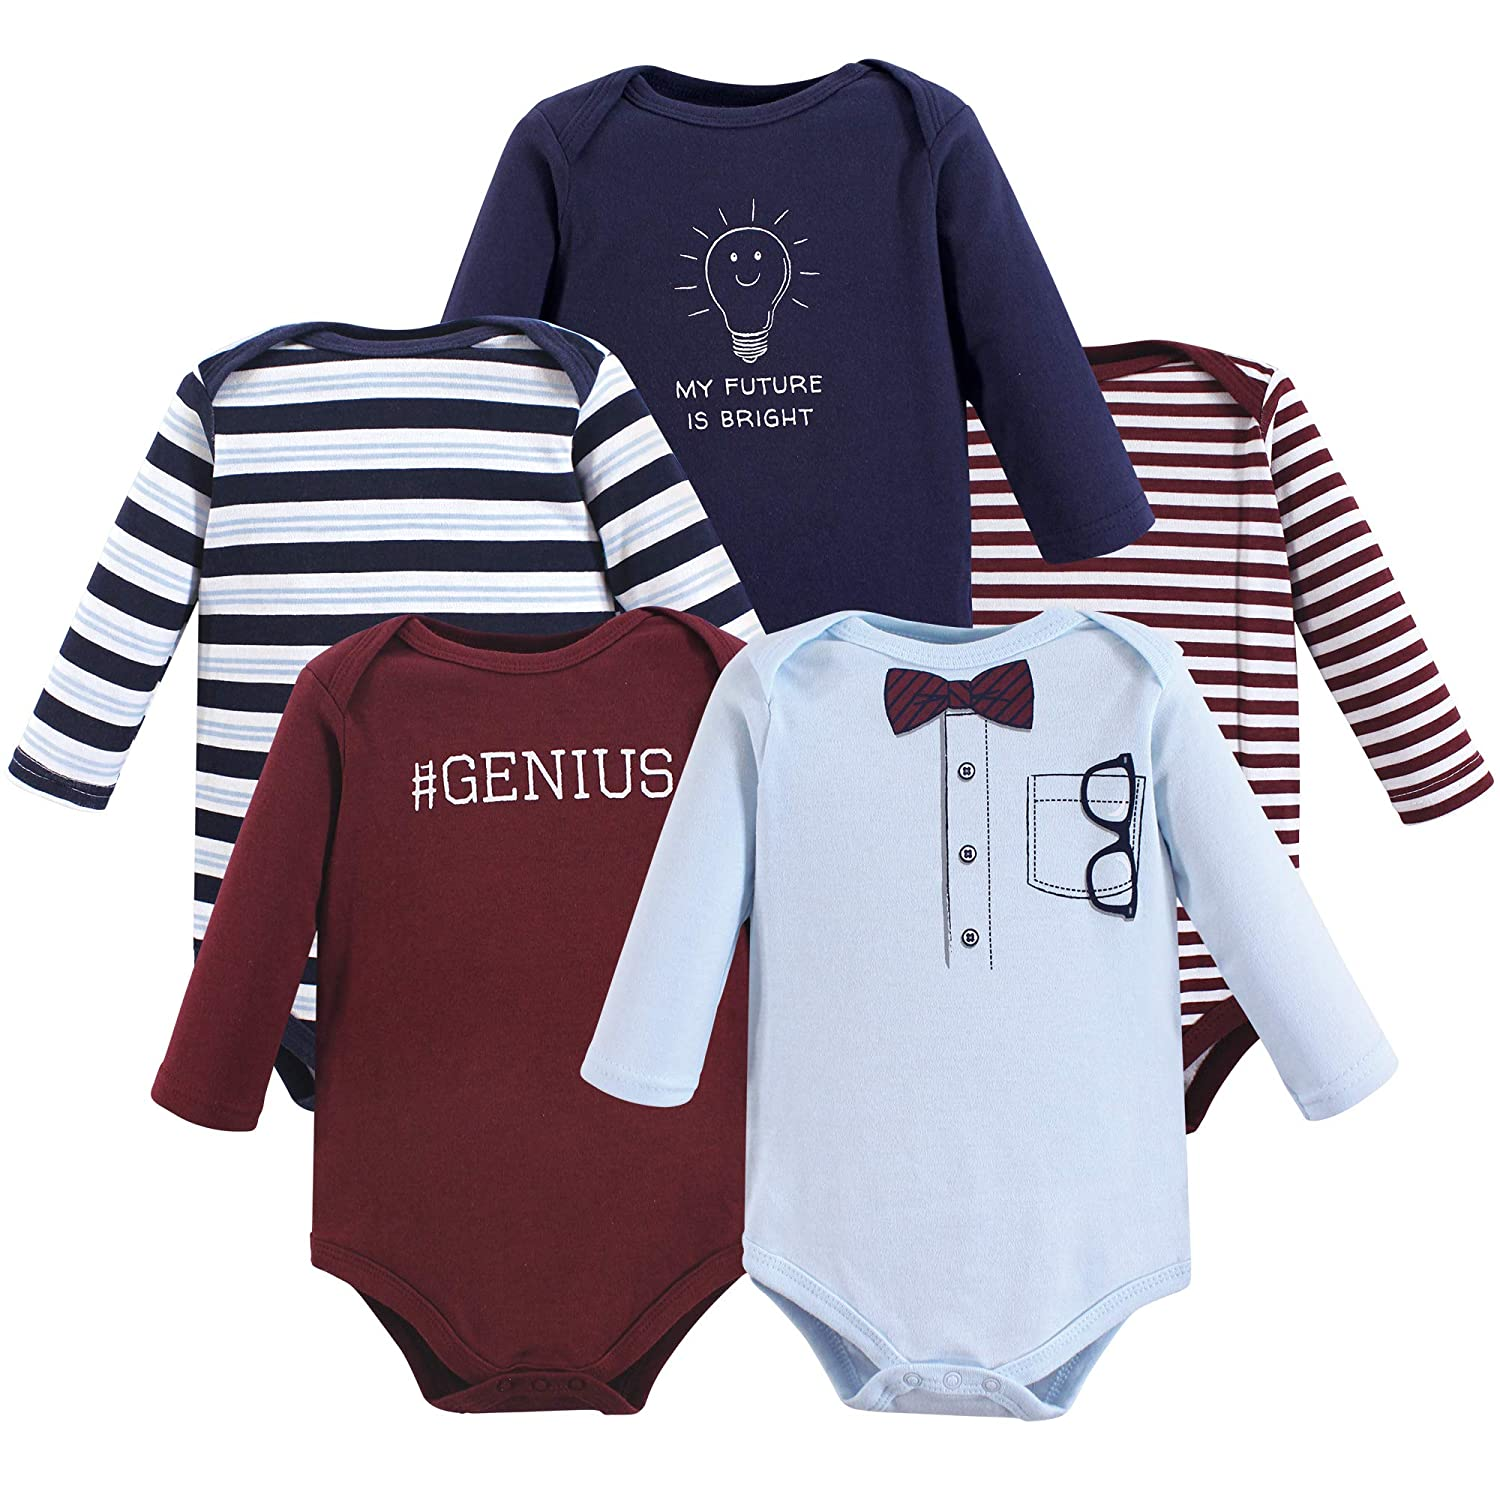 卸売 Little Treasure SHIRT 5pk ベビーボーイズ ユニセックスベビー B07JGRG1VM Genius Sleeve 5pk Long Treasure Sleeve 9-12 Months (12M) 9-12 Months (12M)|Genius 5pk Long Sleeve, テシカガチョウ:fdb58b56 --- arianechie.dominiotemporario.com